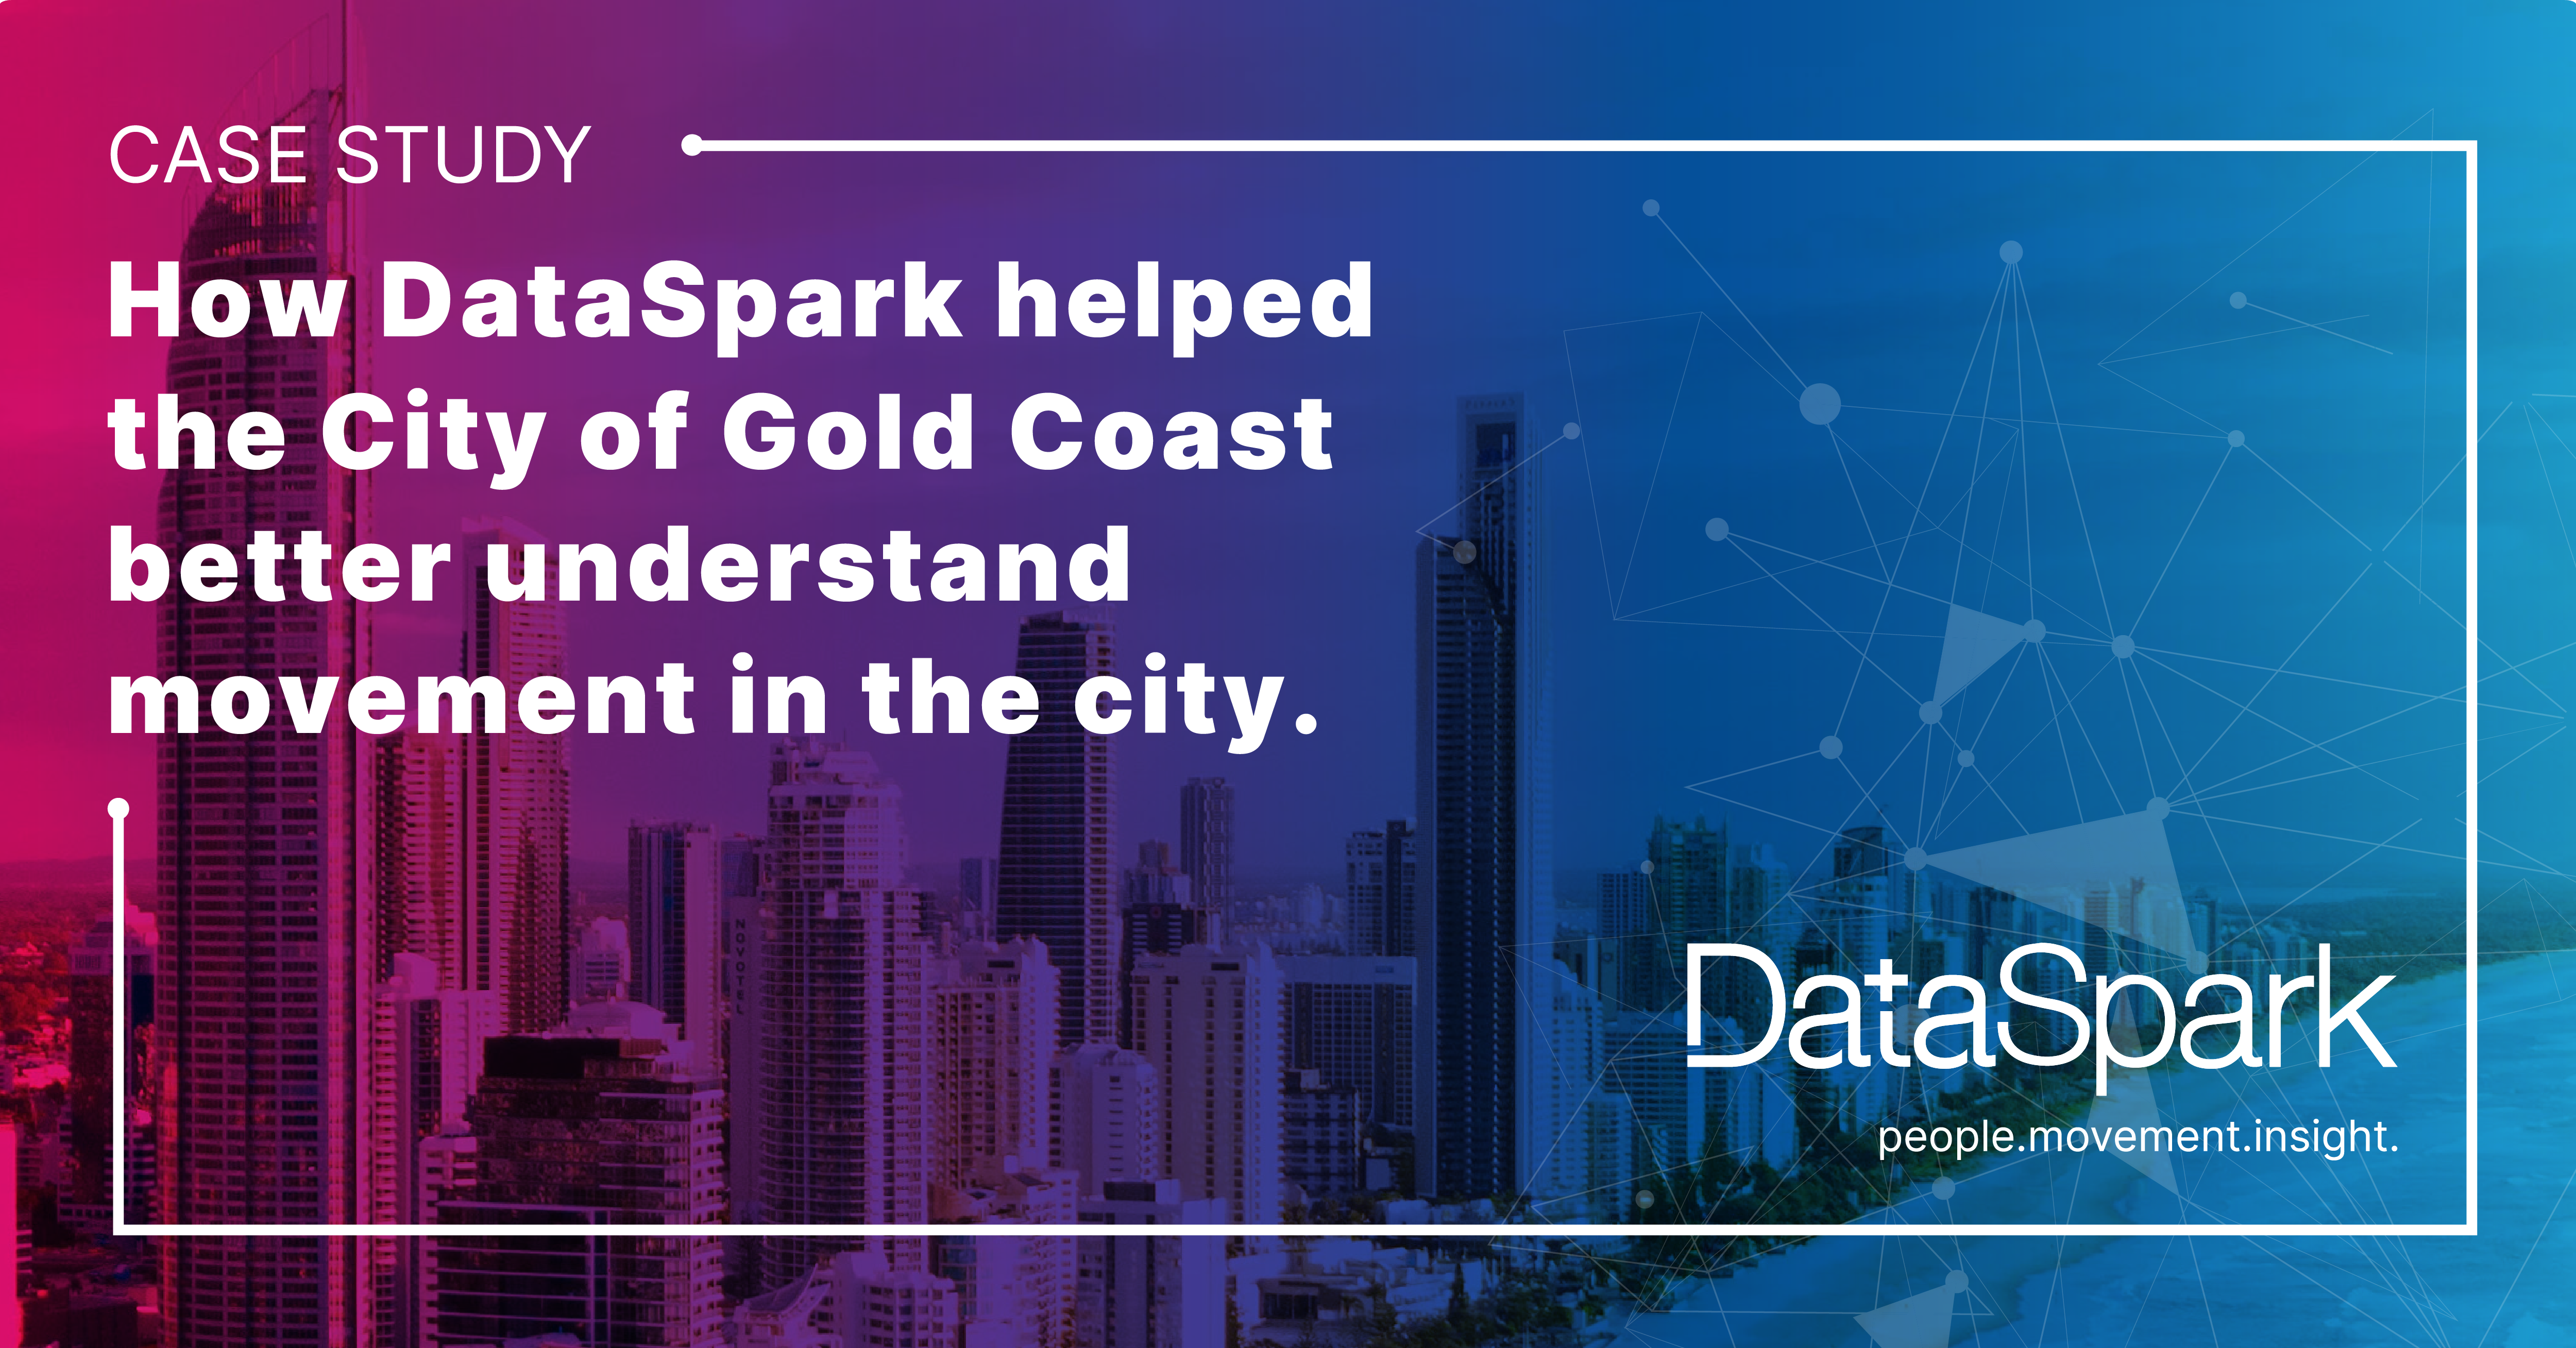 How DataSpark helped the City of Gold Coast better understand movement in the city